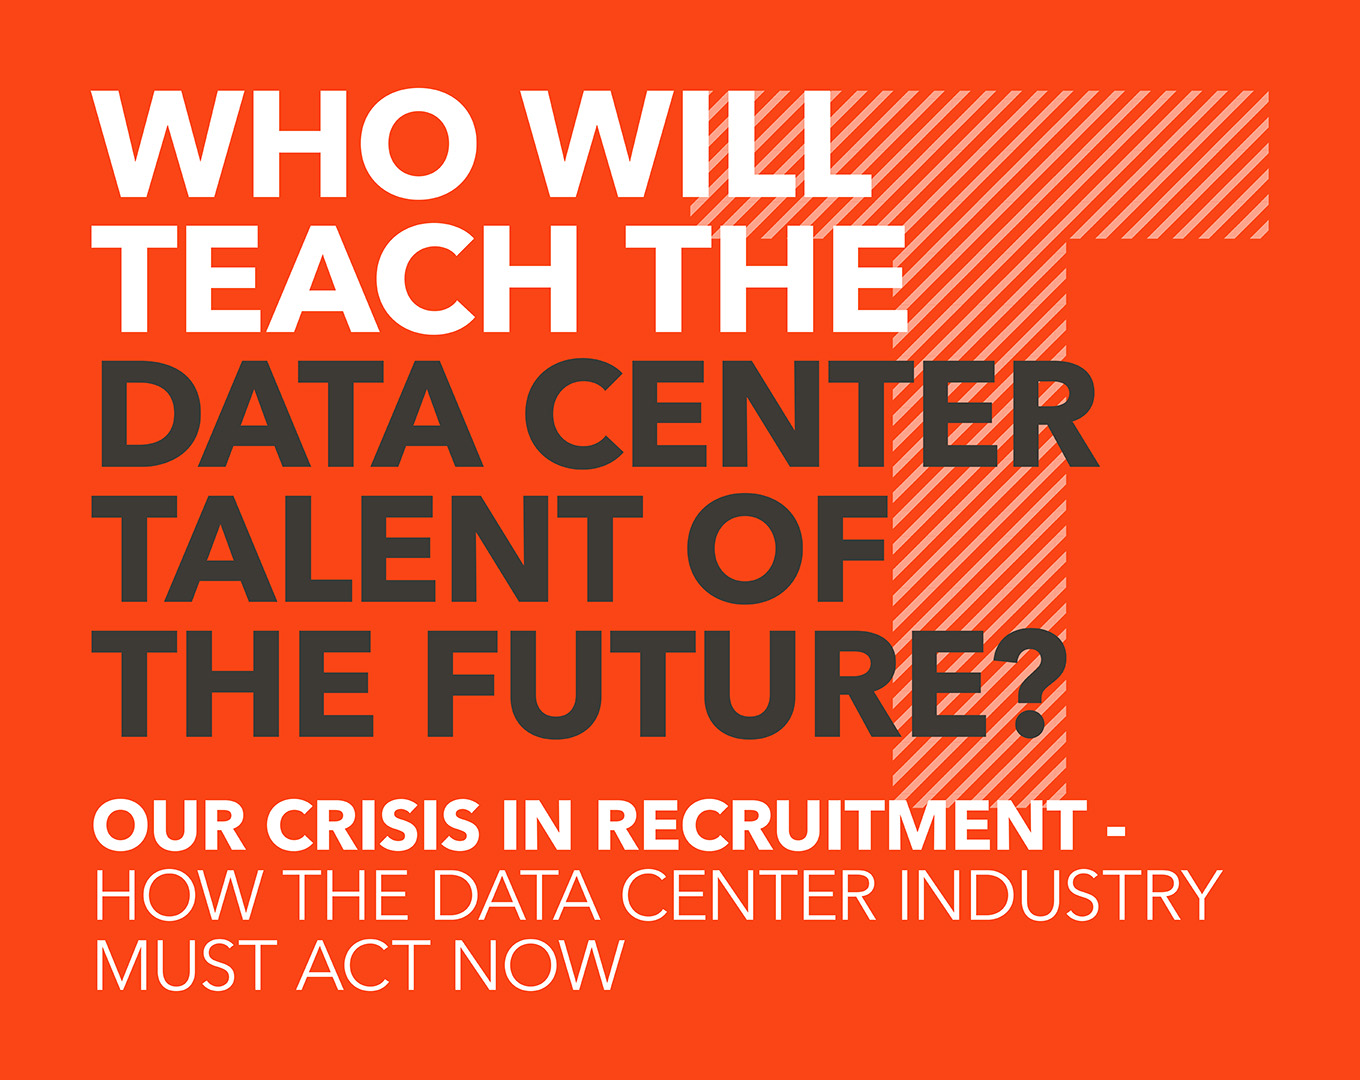 Who will teach the data center talent of the future?